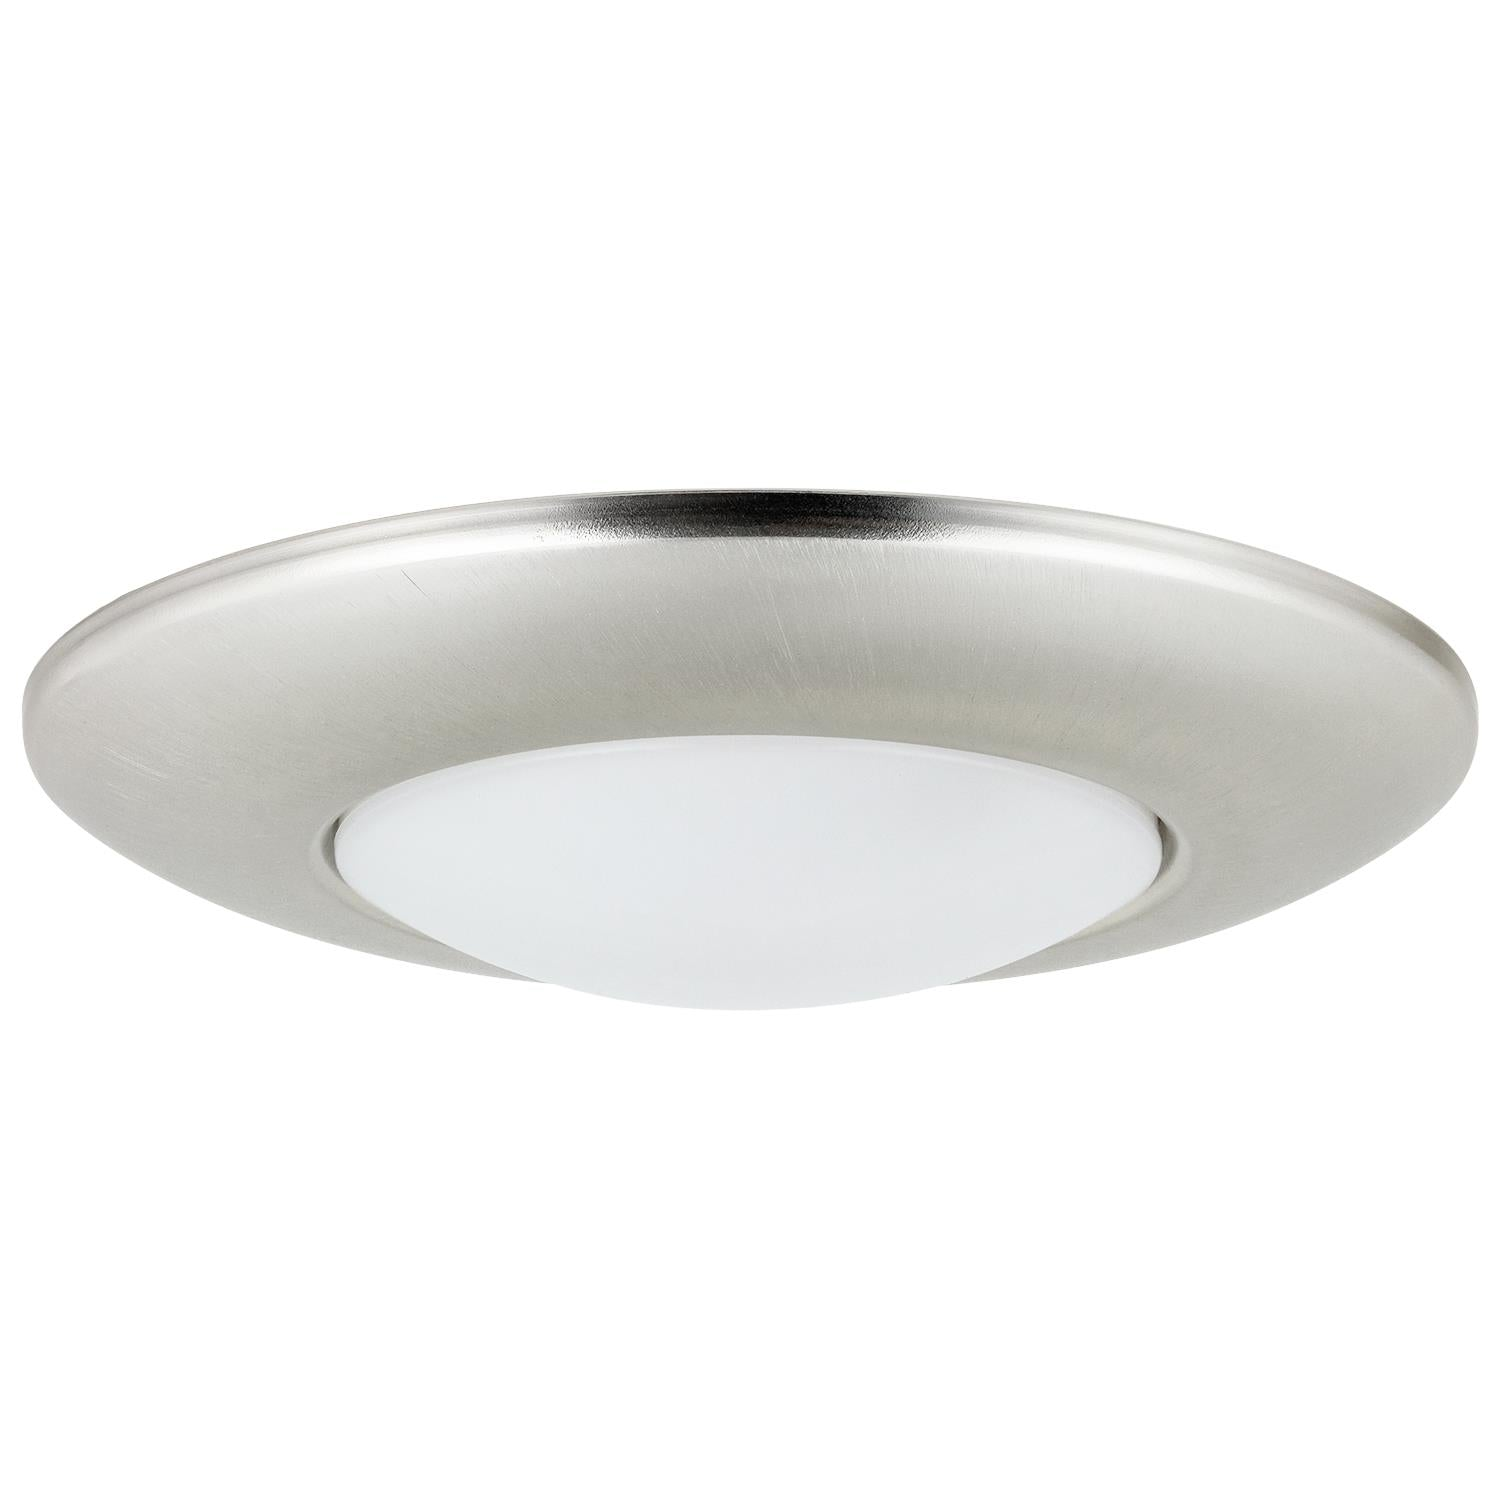 SUNLITE LED 7.5in Brushed Nickel Mini Disc Round Flush Mount Lighting